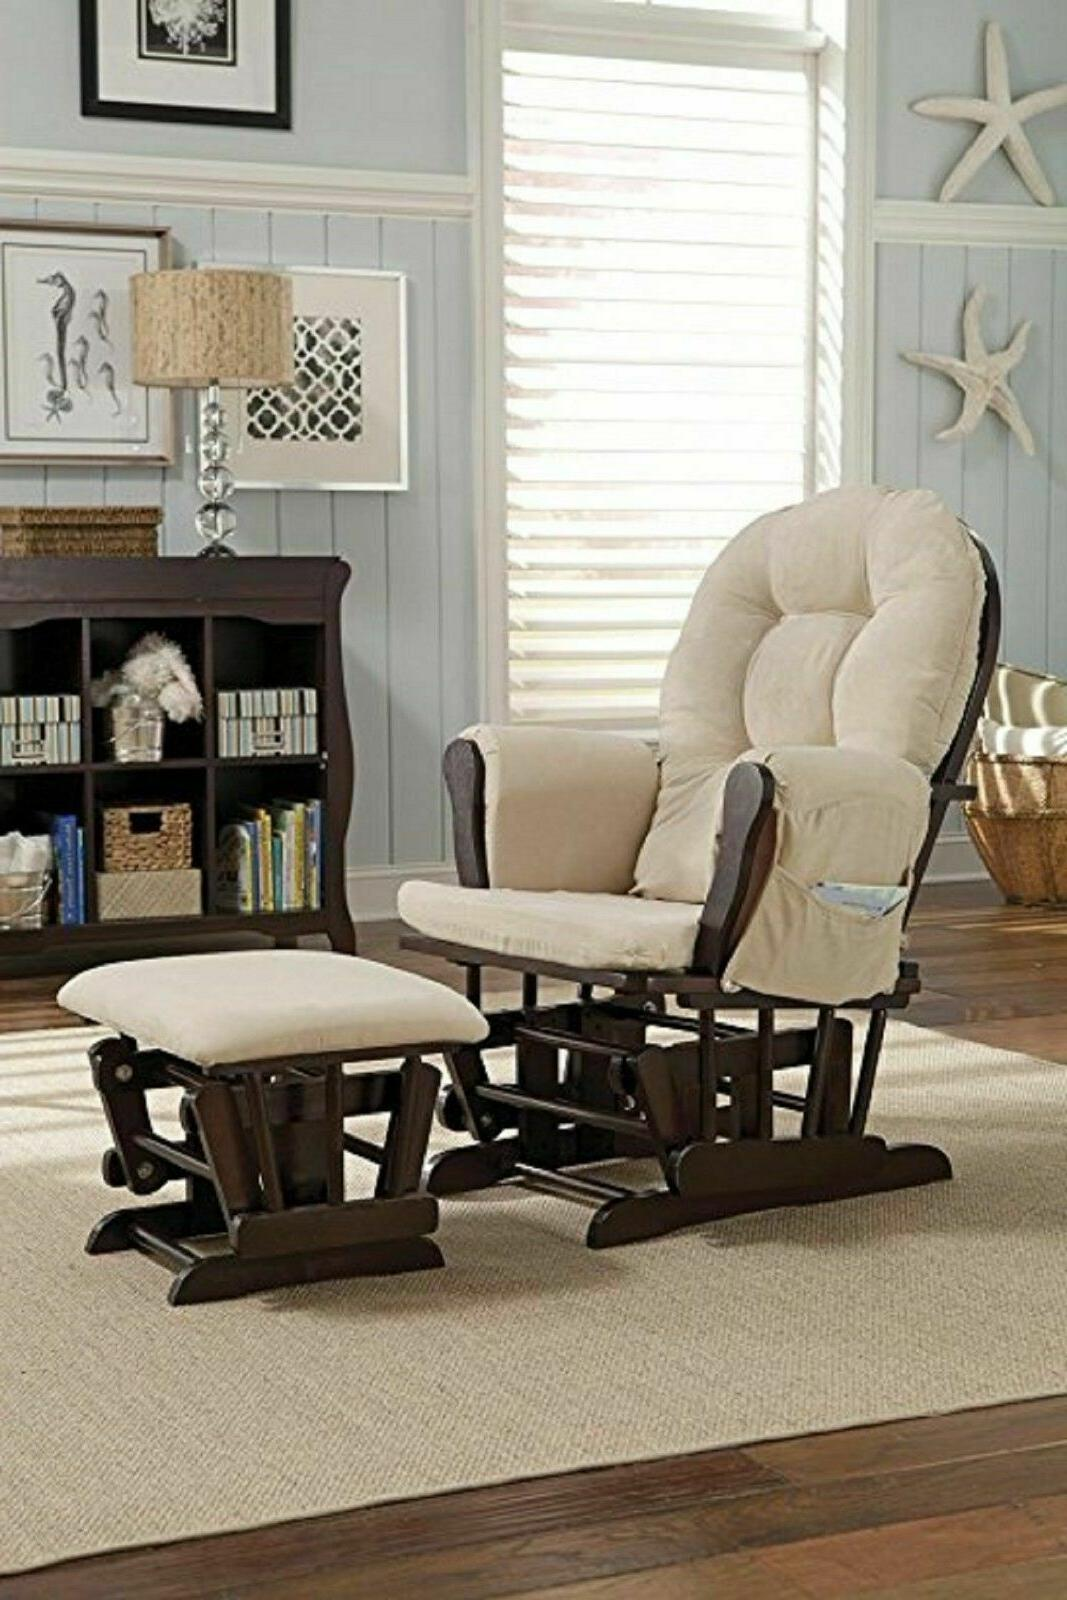 Rocker Glider Rocking Chair Ottoman Baby Nursery Easy Feeding